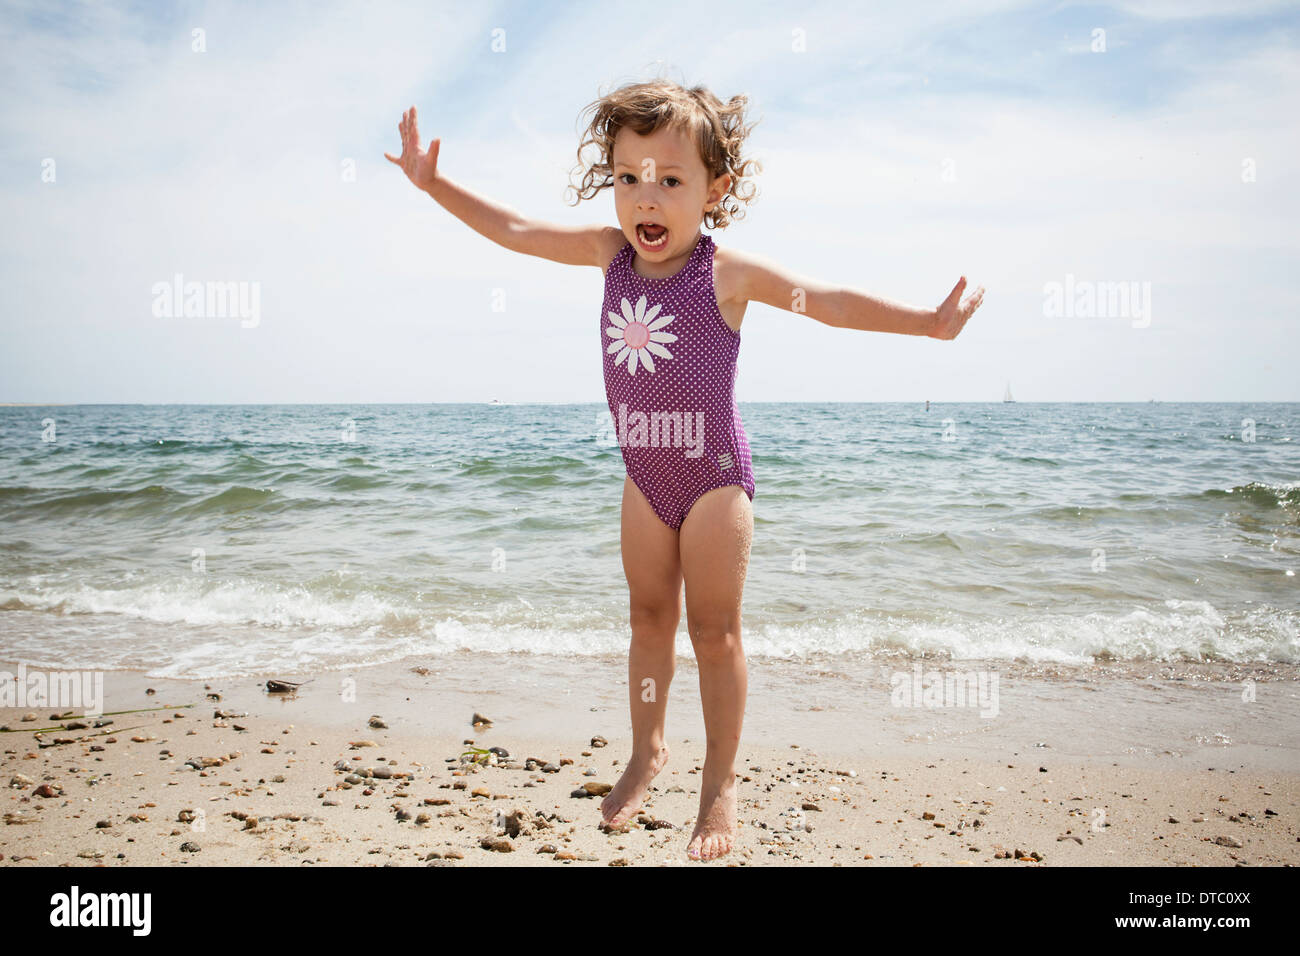 Portrait of jumping female toddler on beach at Falmouth, Massachusetts, USA - Stock Image